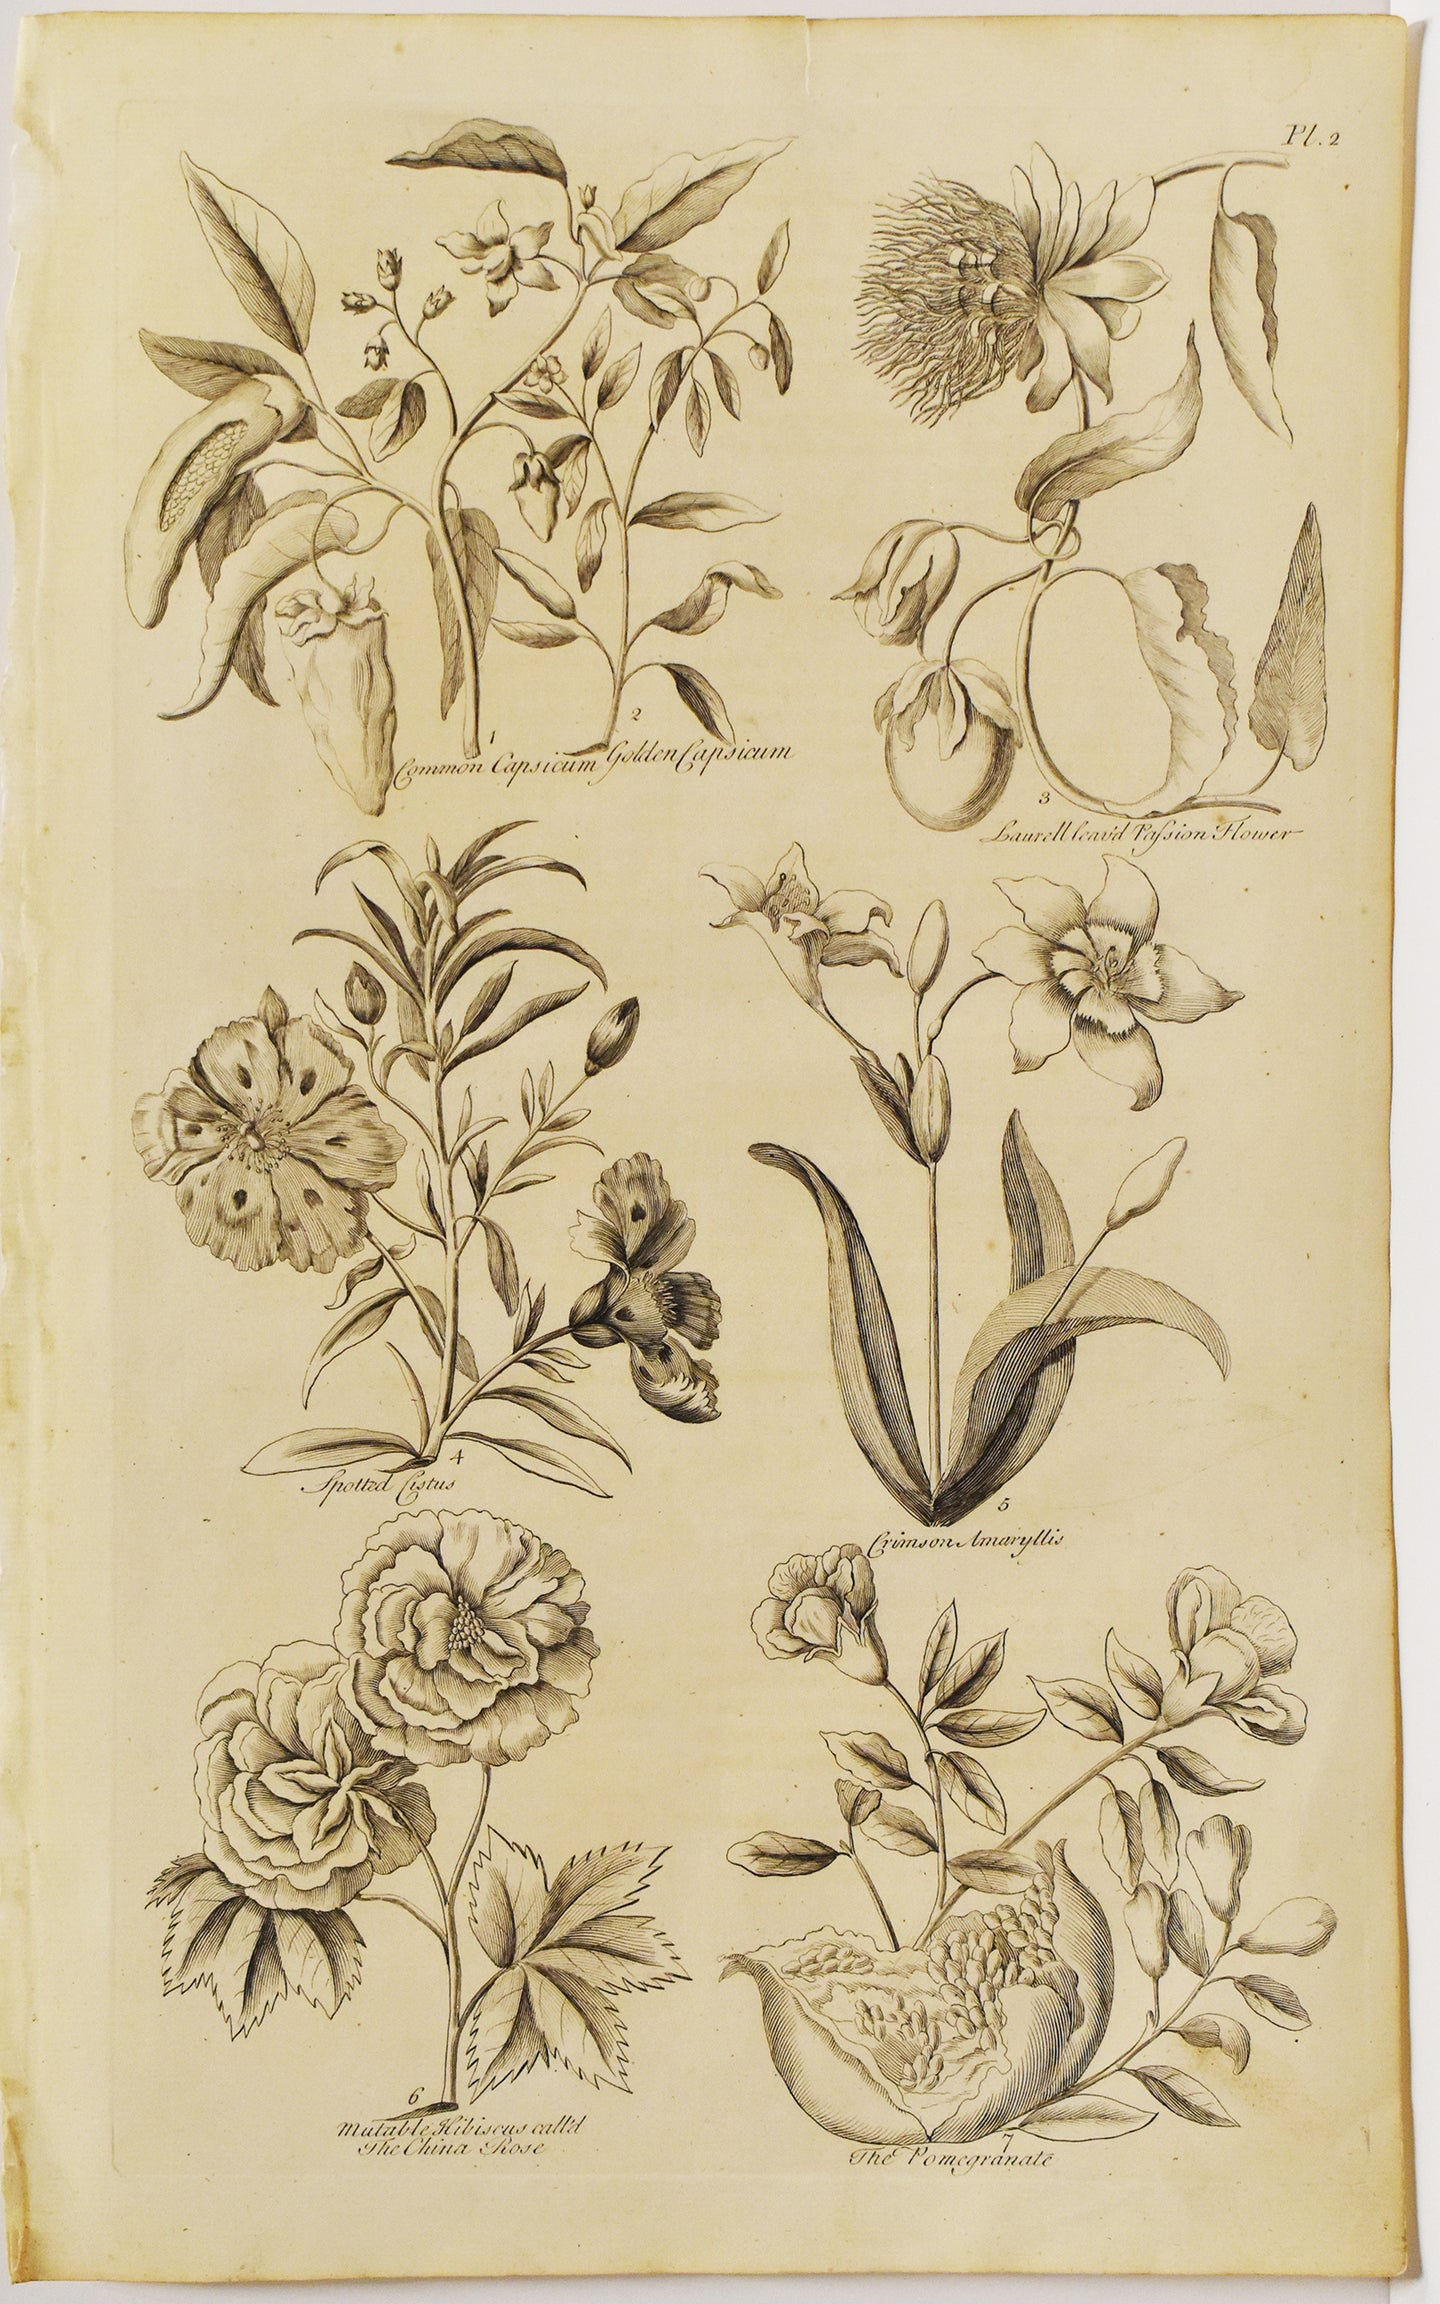 Botanical: John Hill 1757